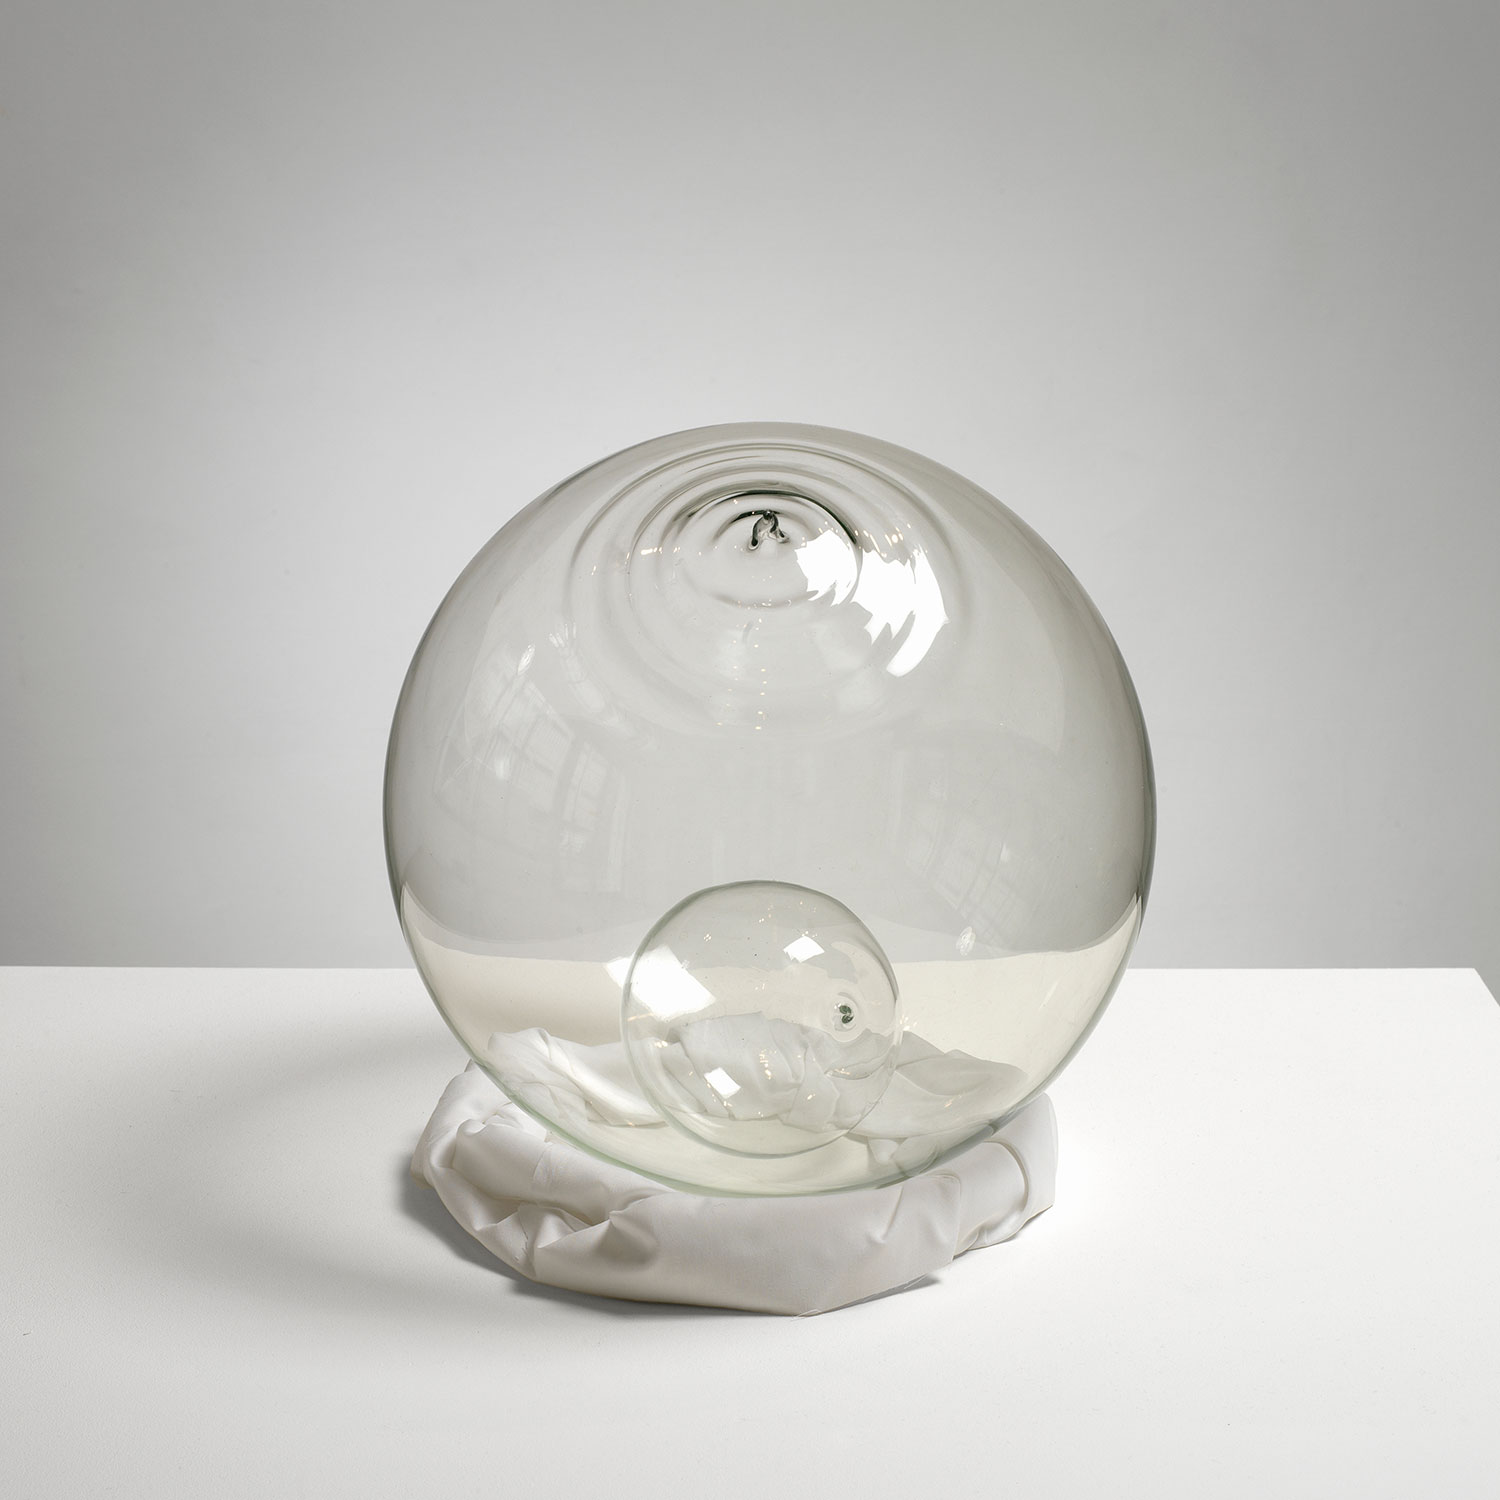 John Latham, 'Least Event as Habit' (1970, two sealed glass spheres with vacuums)